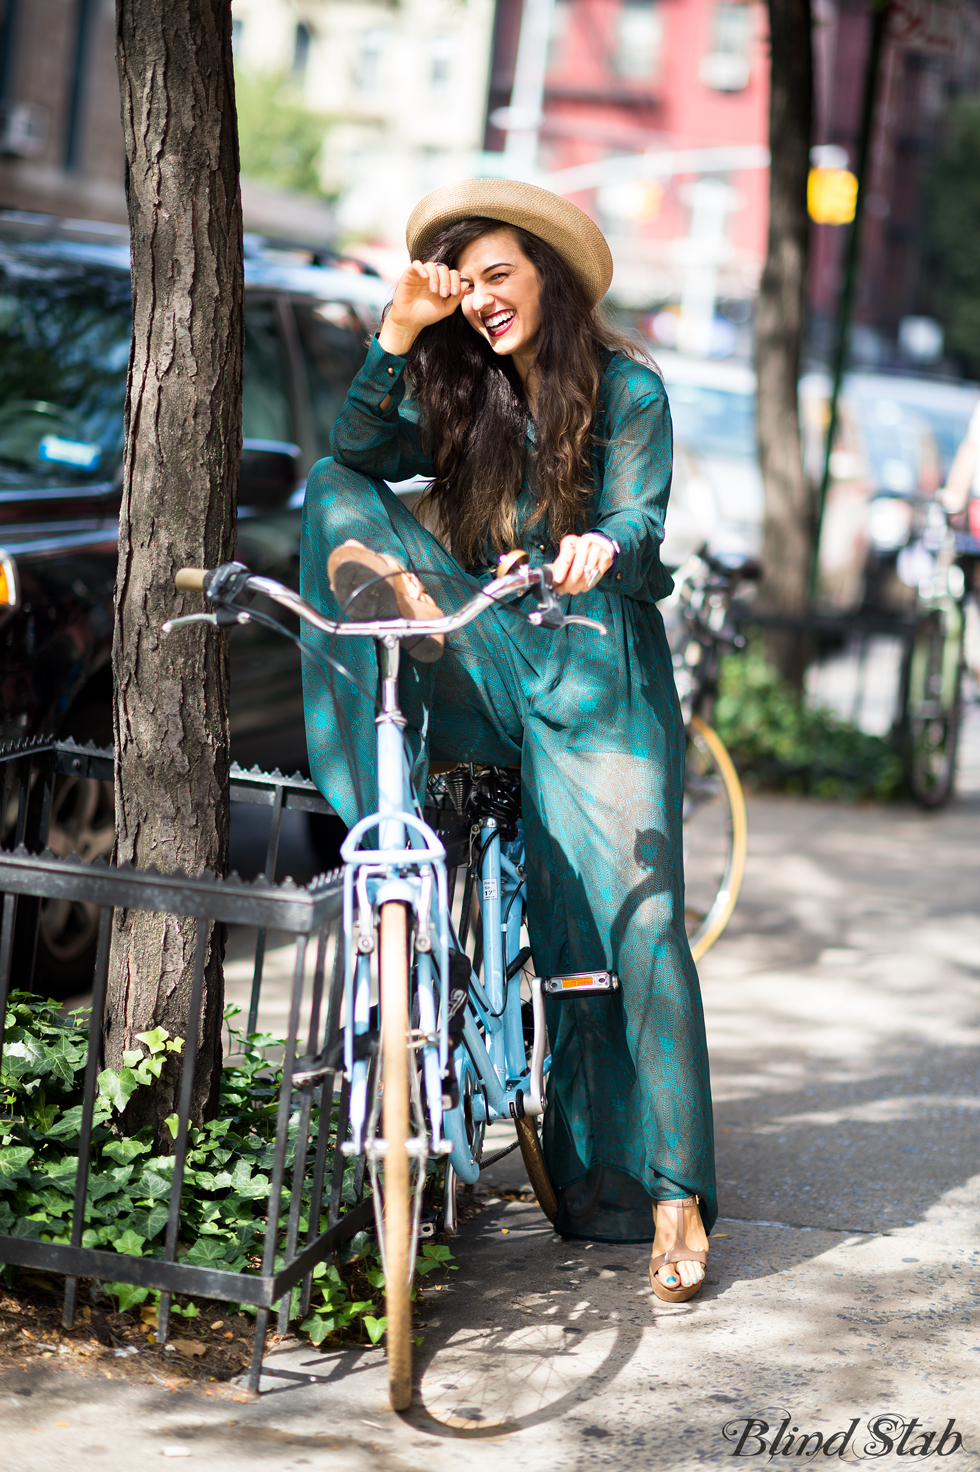 Girl-on-bike-fashion-nyc